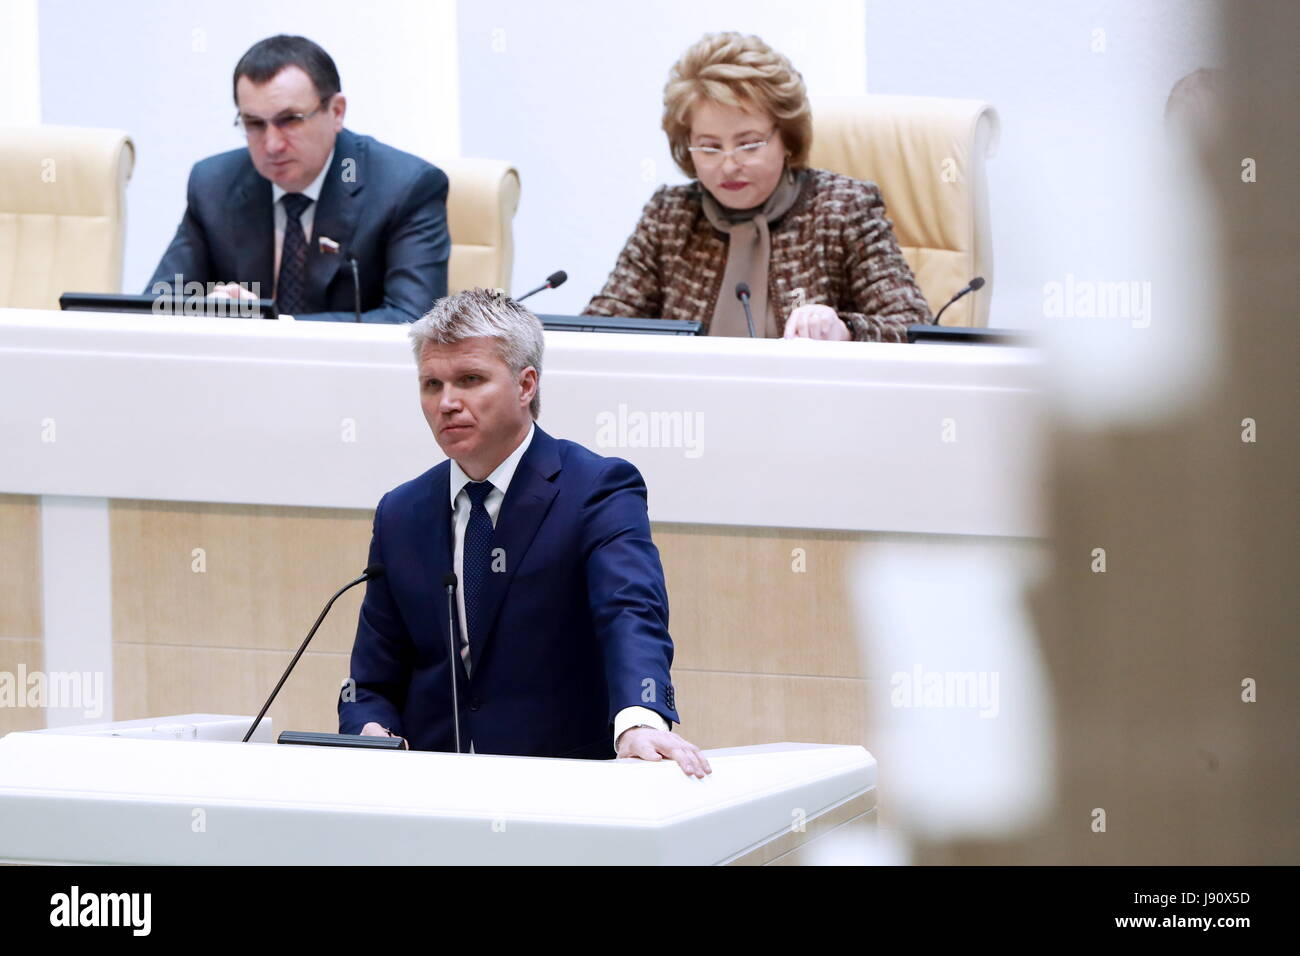 Deputy of the State Duma of the Federal Assembly of the Russian Federation Schlegel Robert Alexandrovich